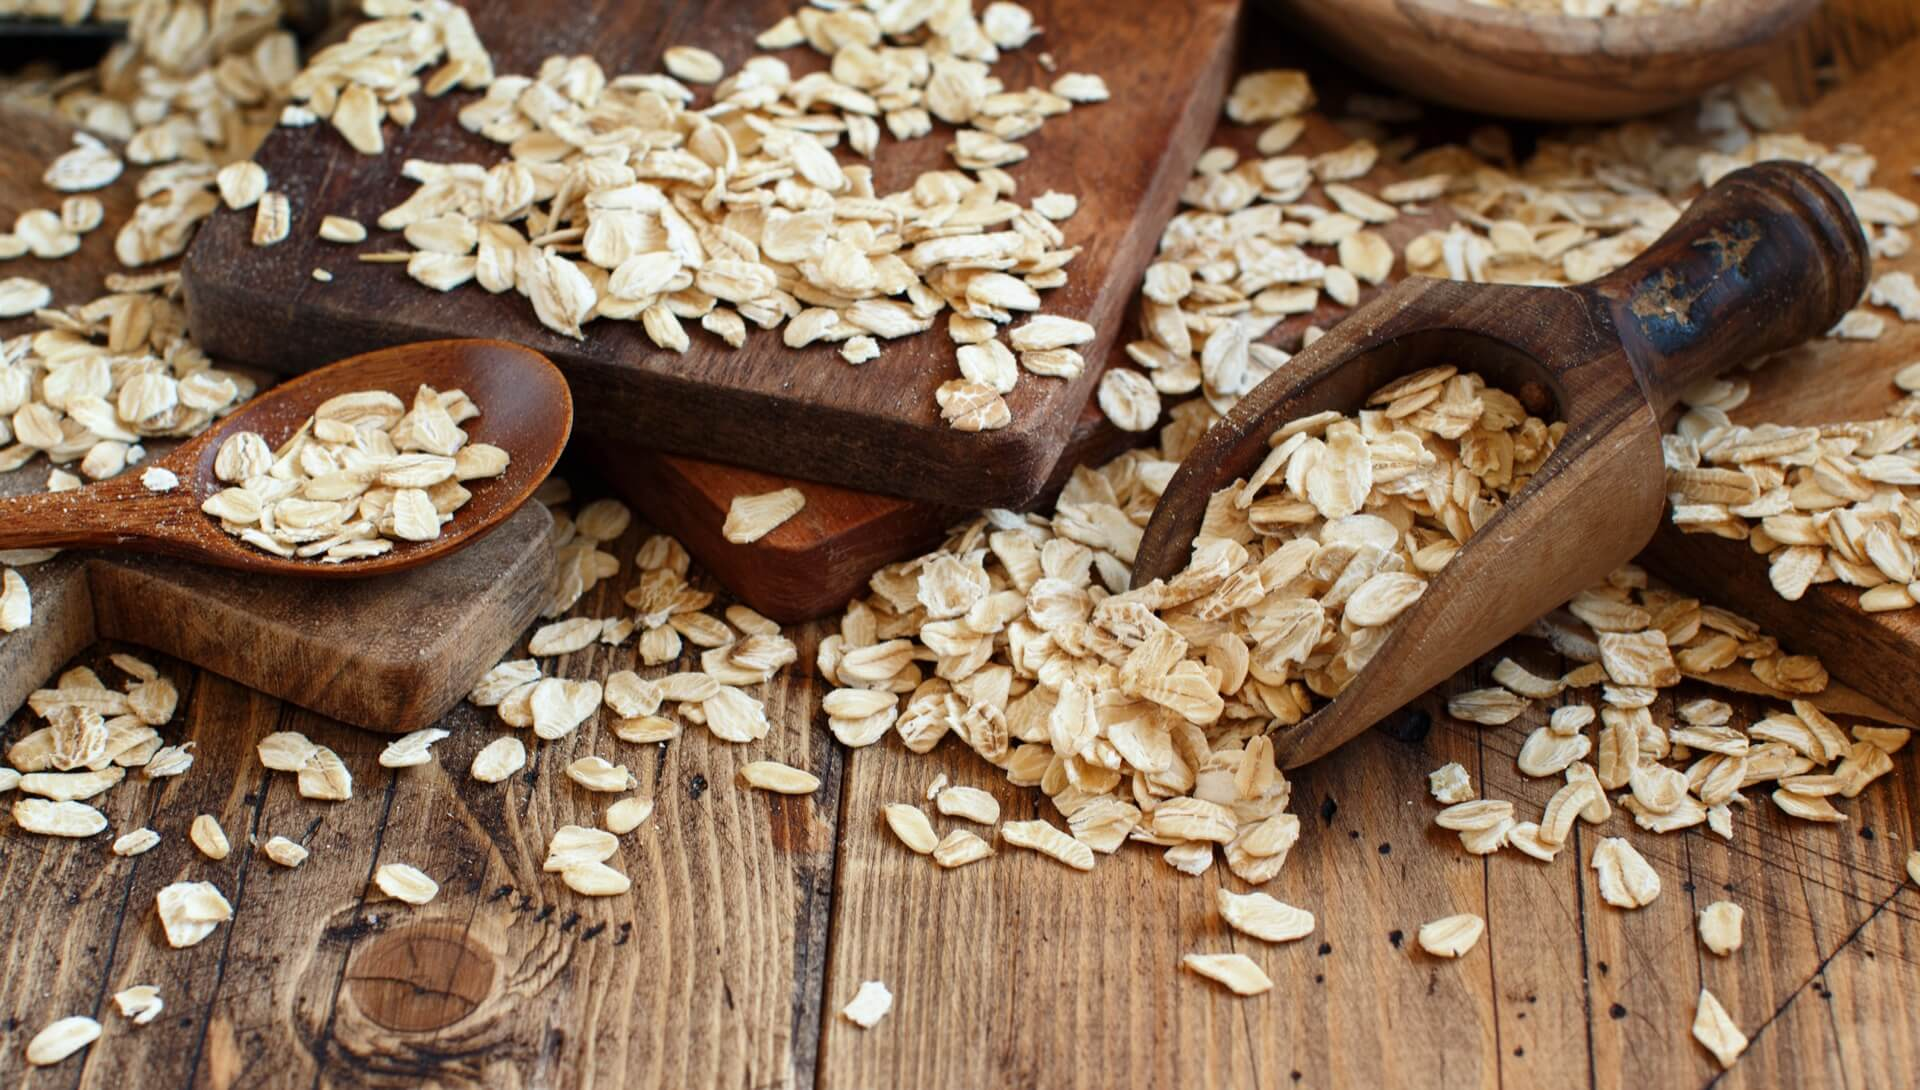 Oats and scoop on a wooden countertop